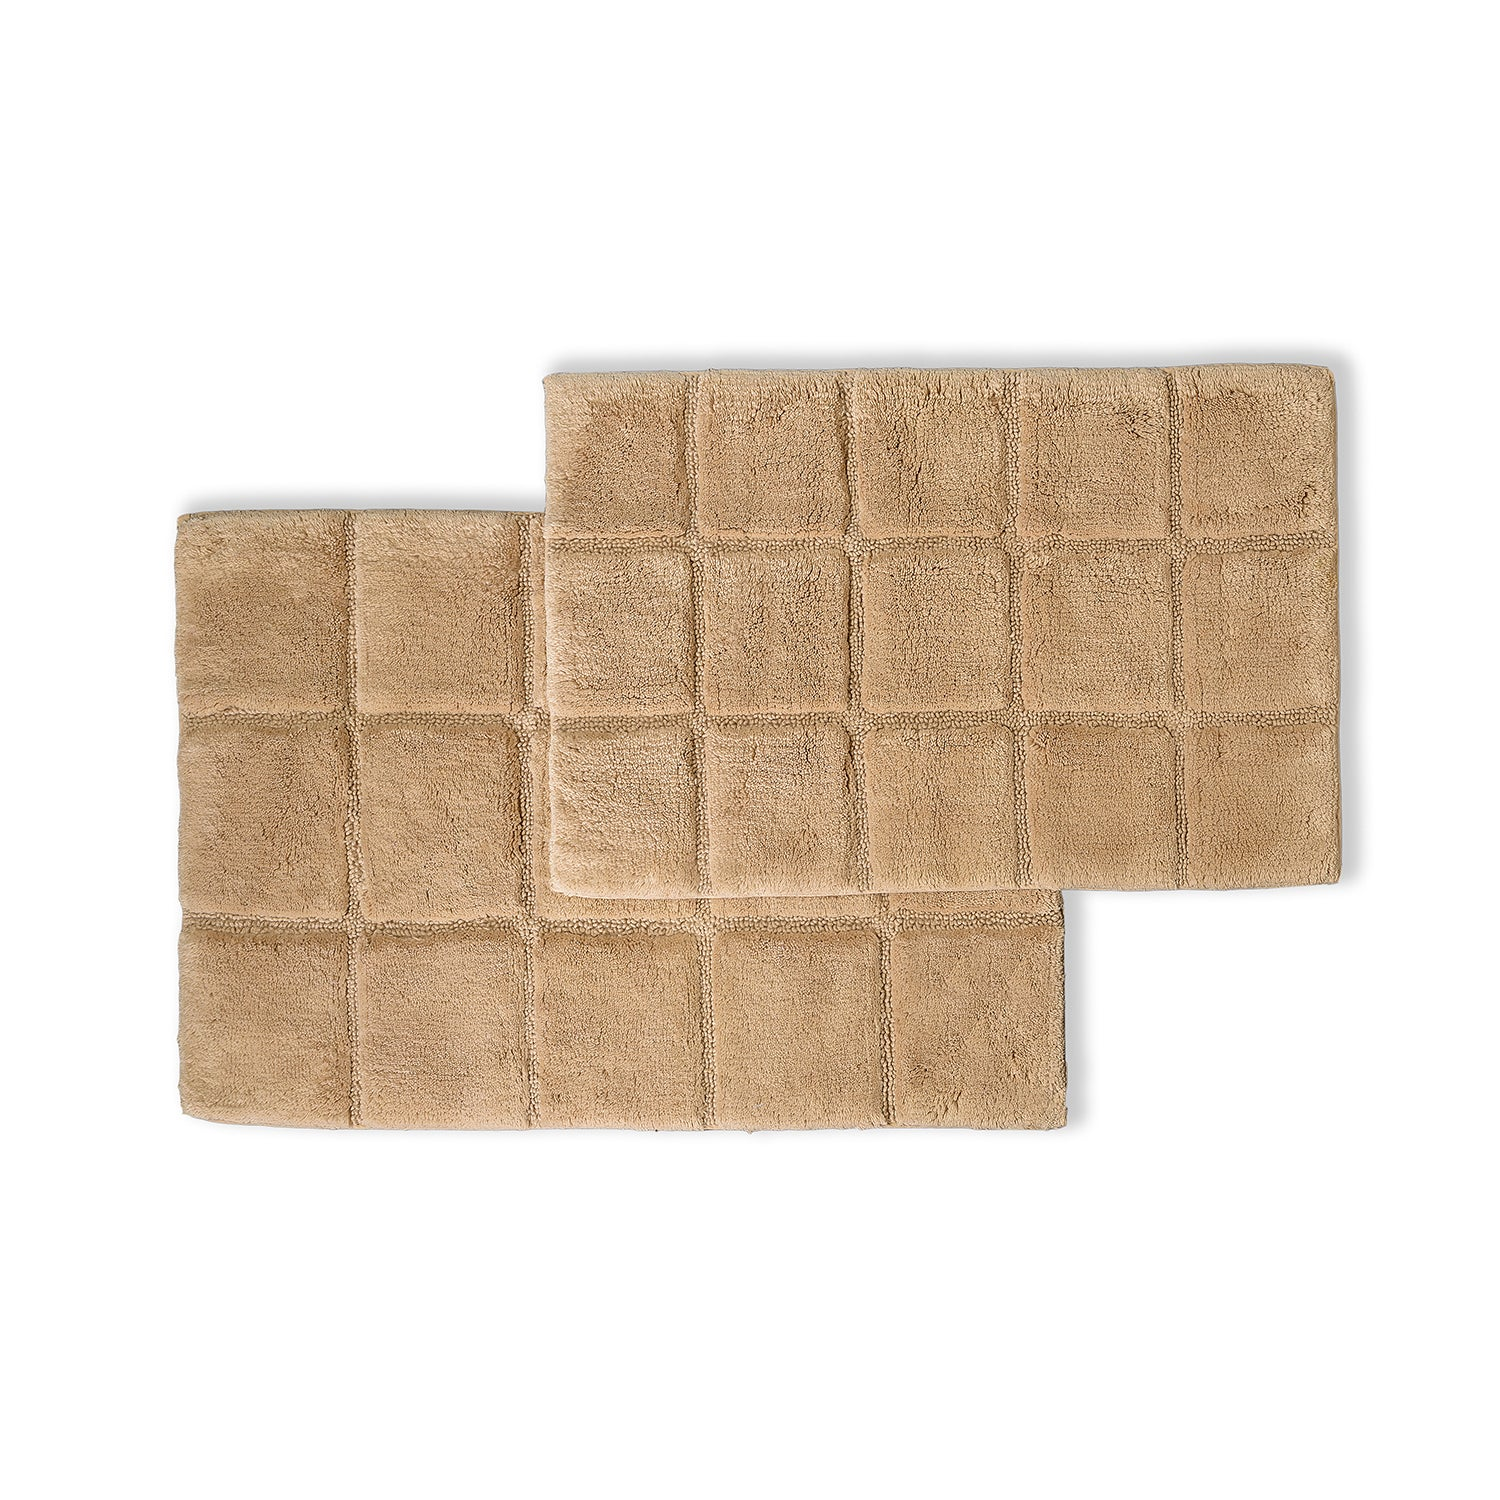 Checkered Non Slip Cotton Bath Rugs For Bathroom Set of 2, 10 Colors